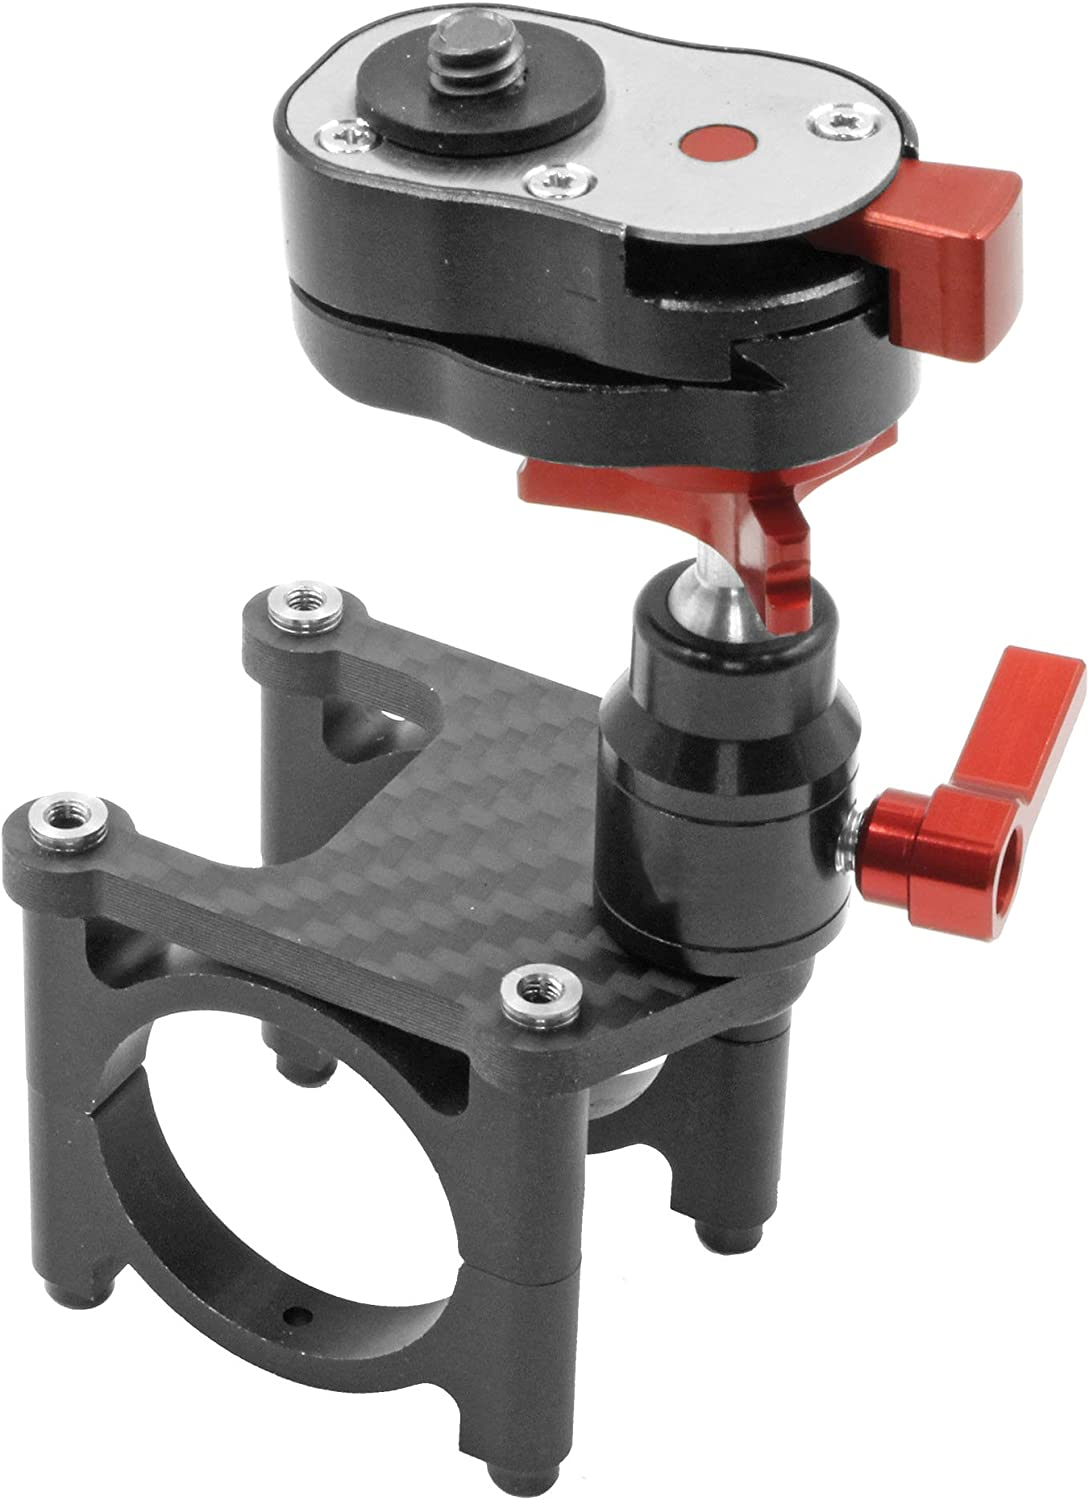 GyroVu Heavy Duty Monitor Mount with Quick Release for DJI Ronin Stabilizer